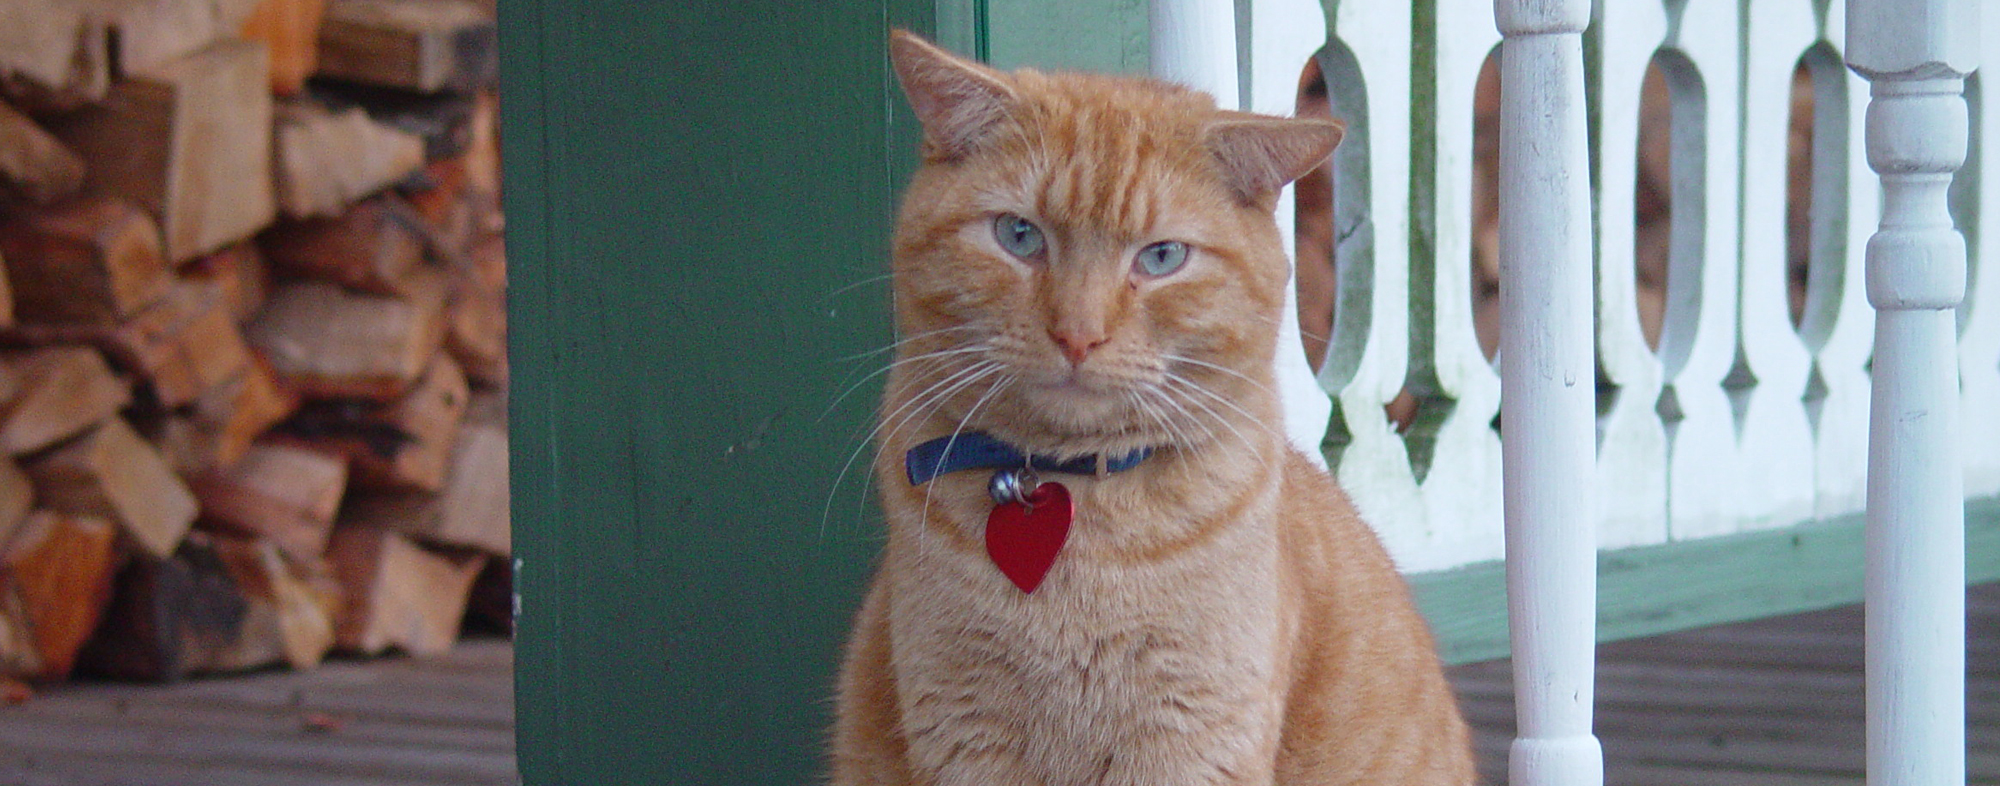 Outside on the porch, an orange cat sits with a collar around its neck